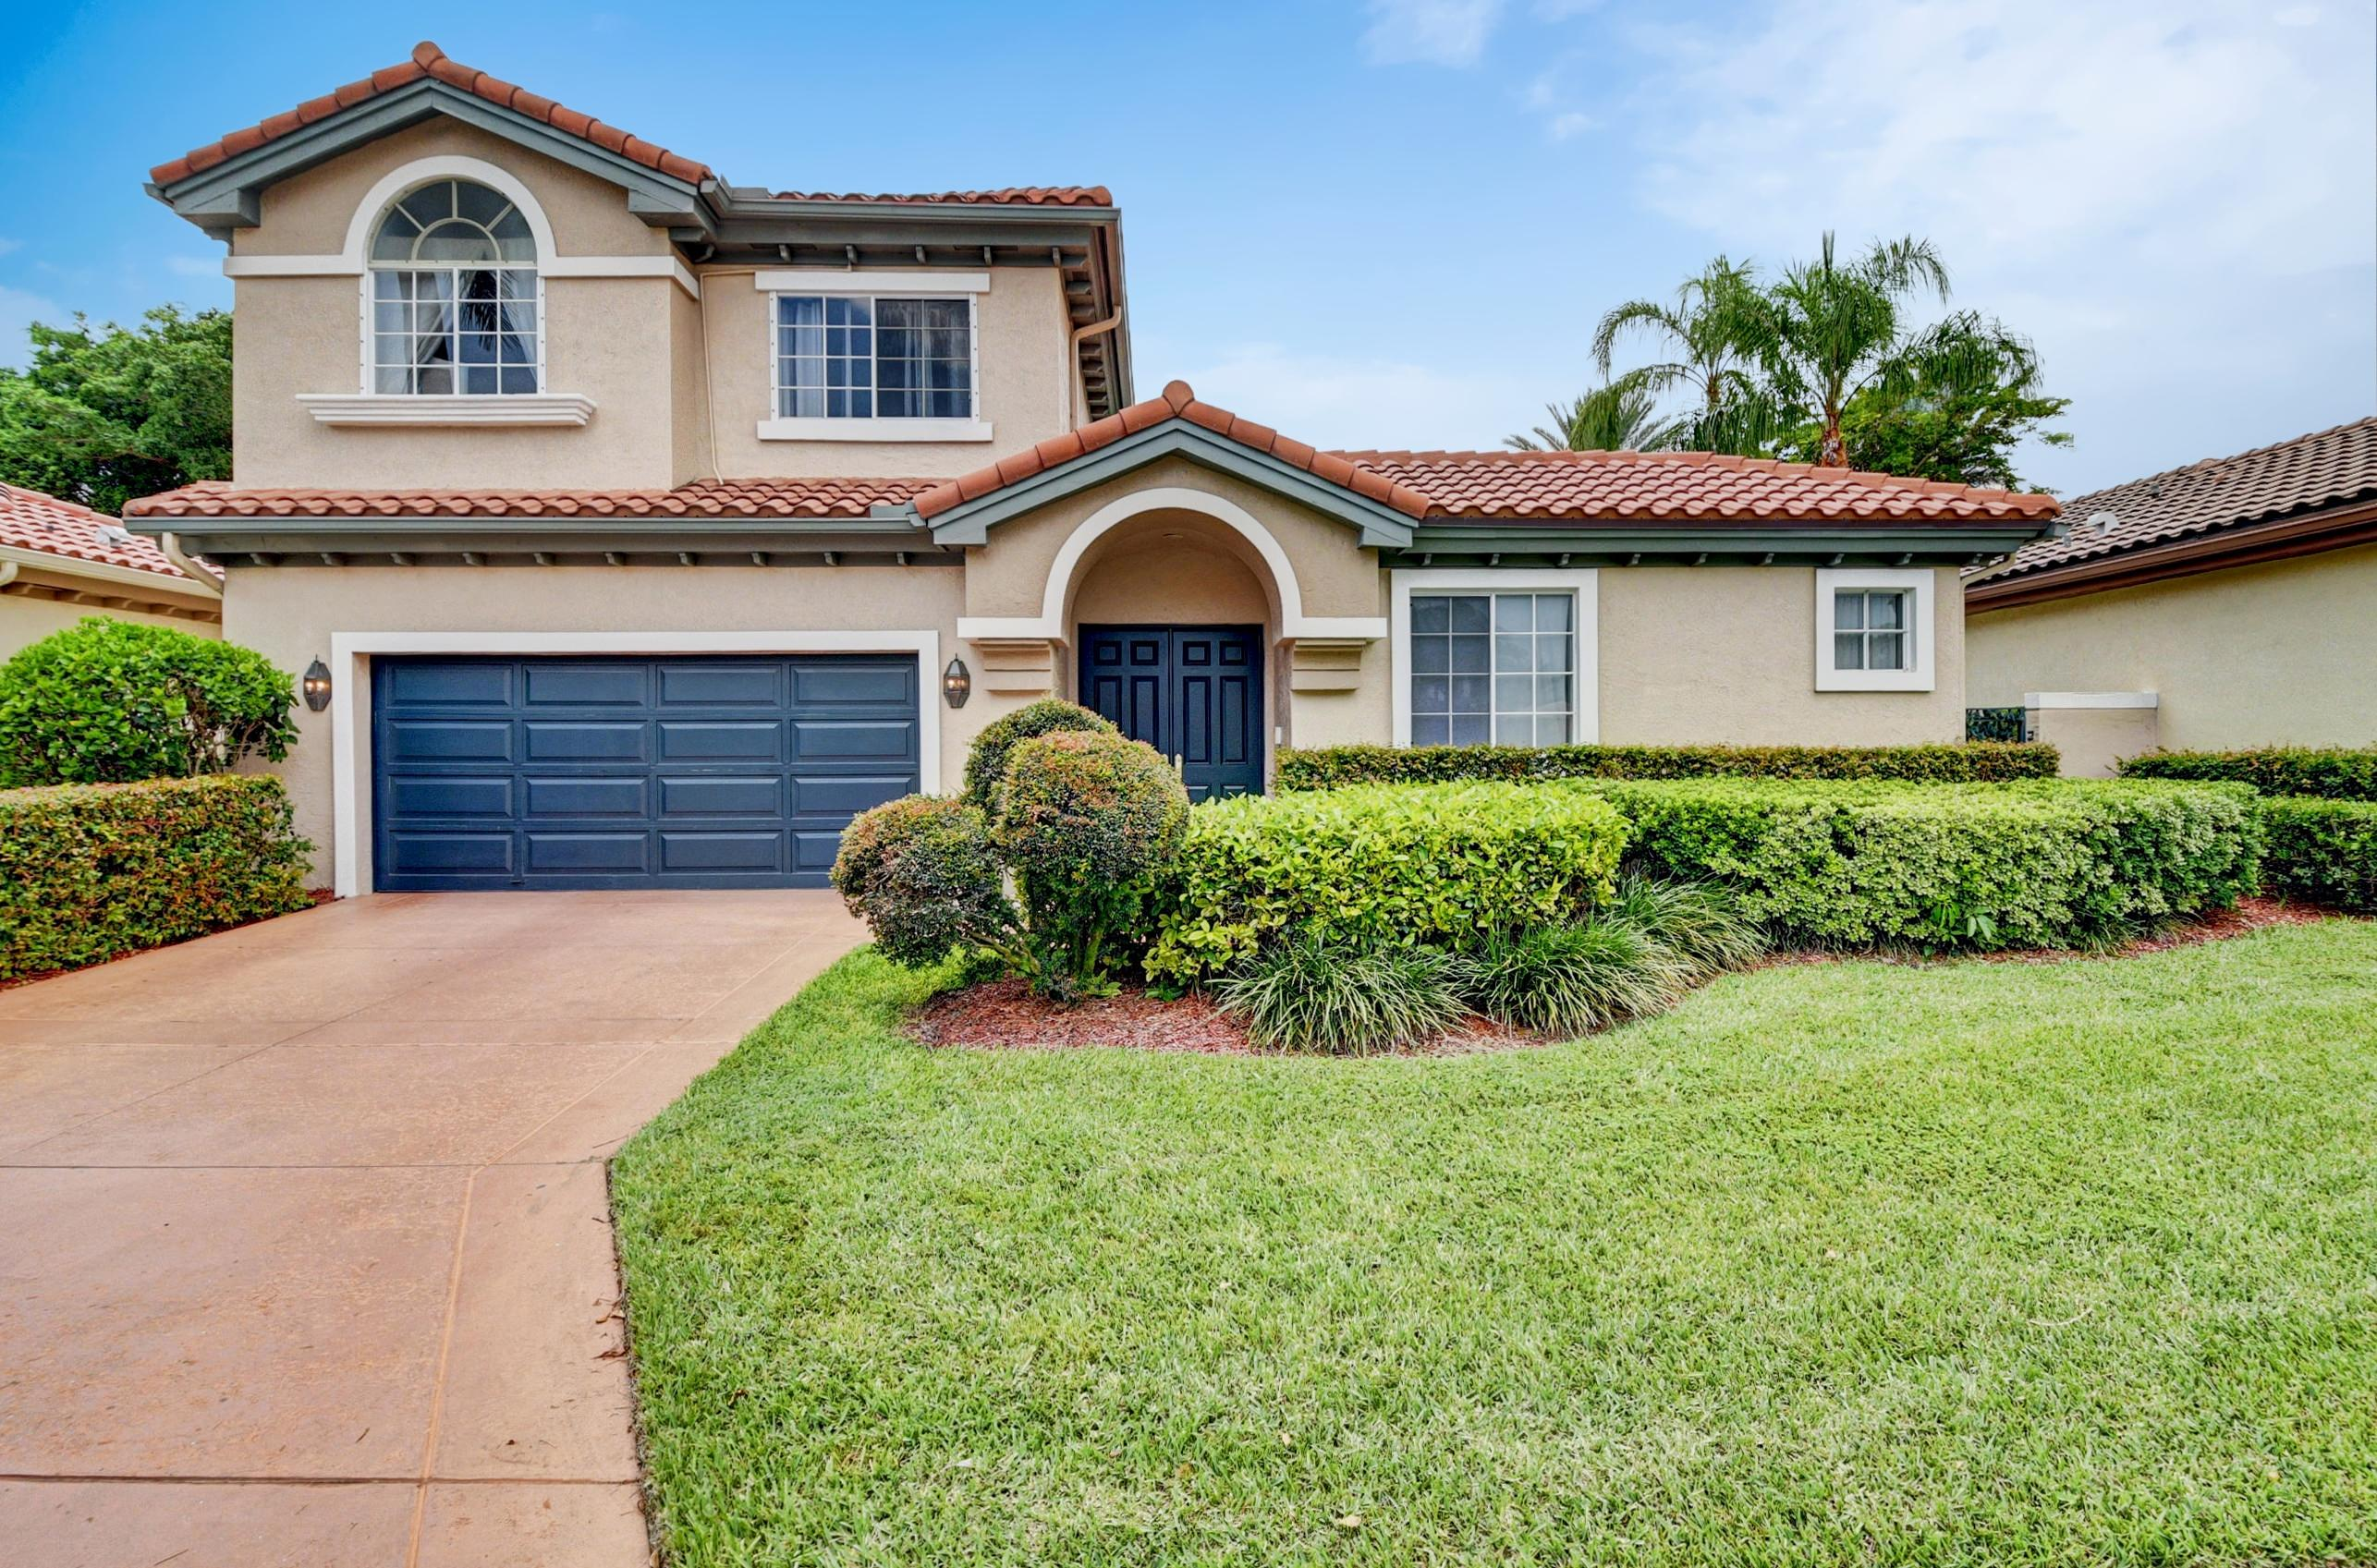 Photo of 6230 NW 23rd Street, Boca Raton, FL 33434